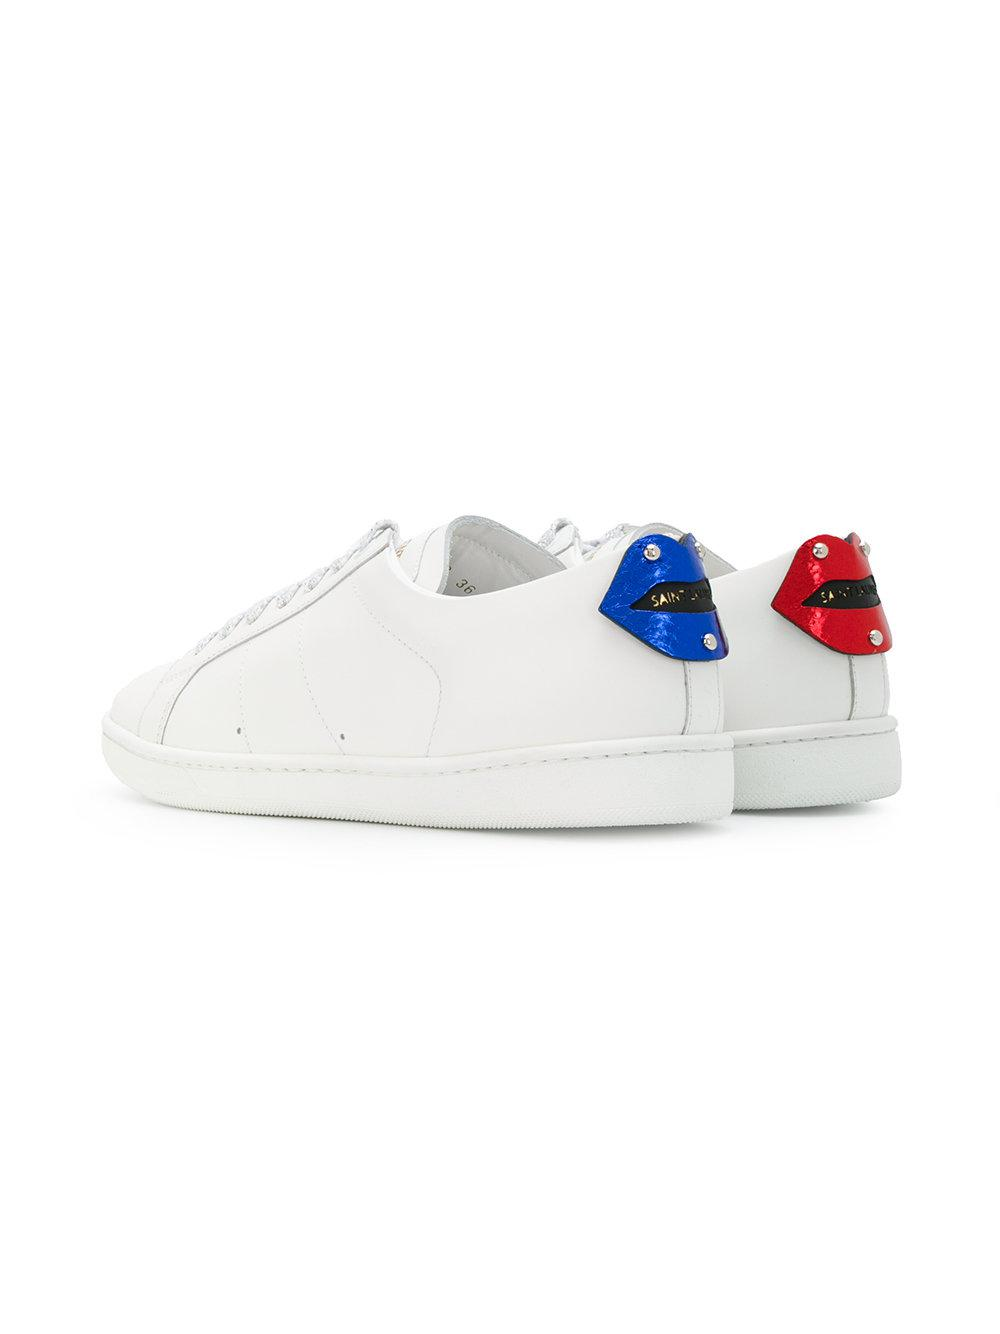 5a67b9b42fdf Saint Laurent - White Court Classic Lips Sneakers - Lyst. View fullscreen